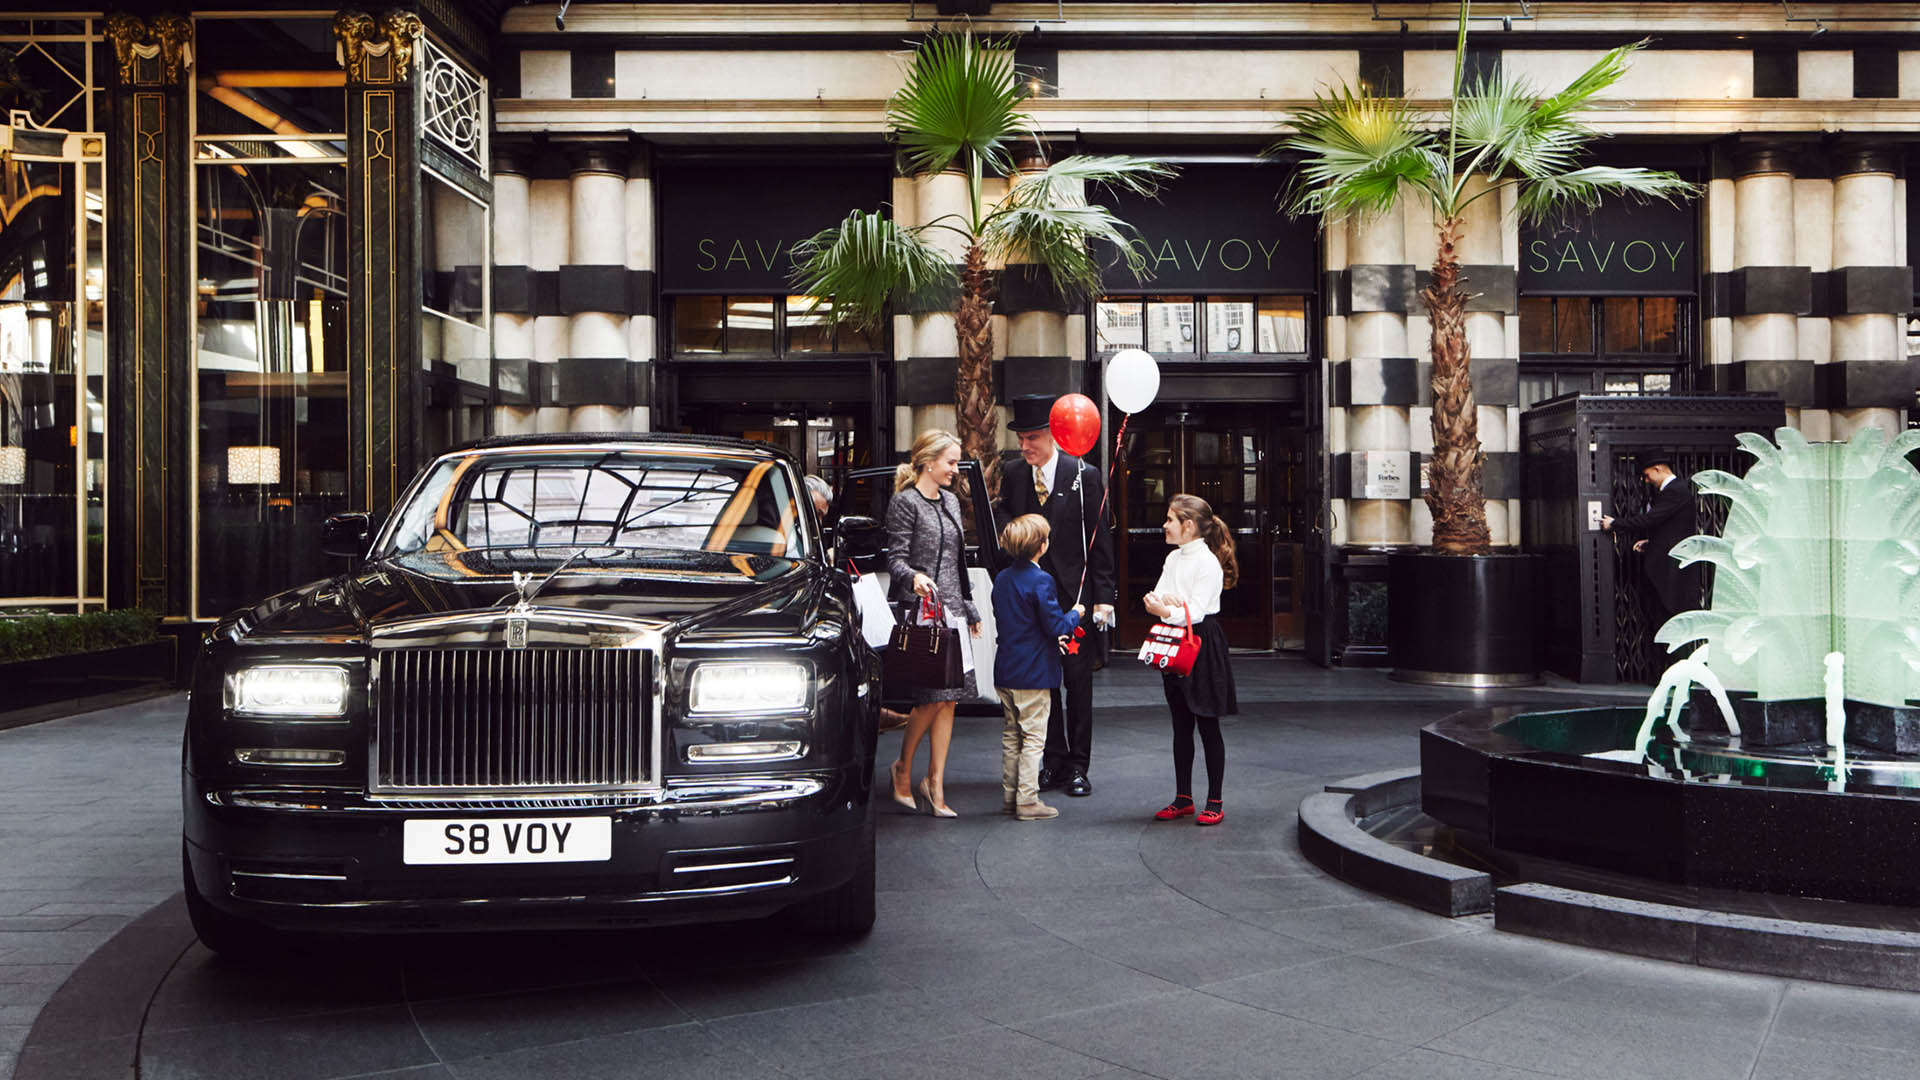 The Savoy Hotel in London   Luxurious 5 Star Hotel   The Savoy